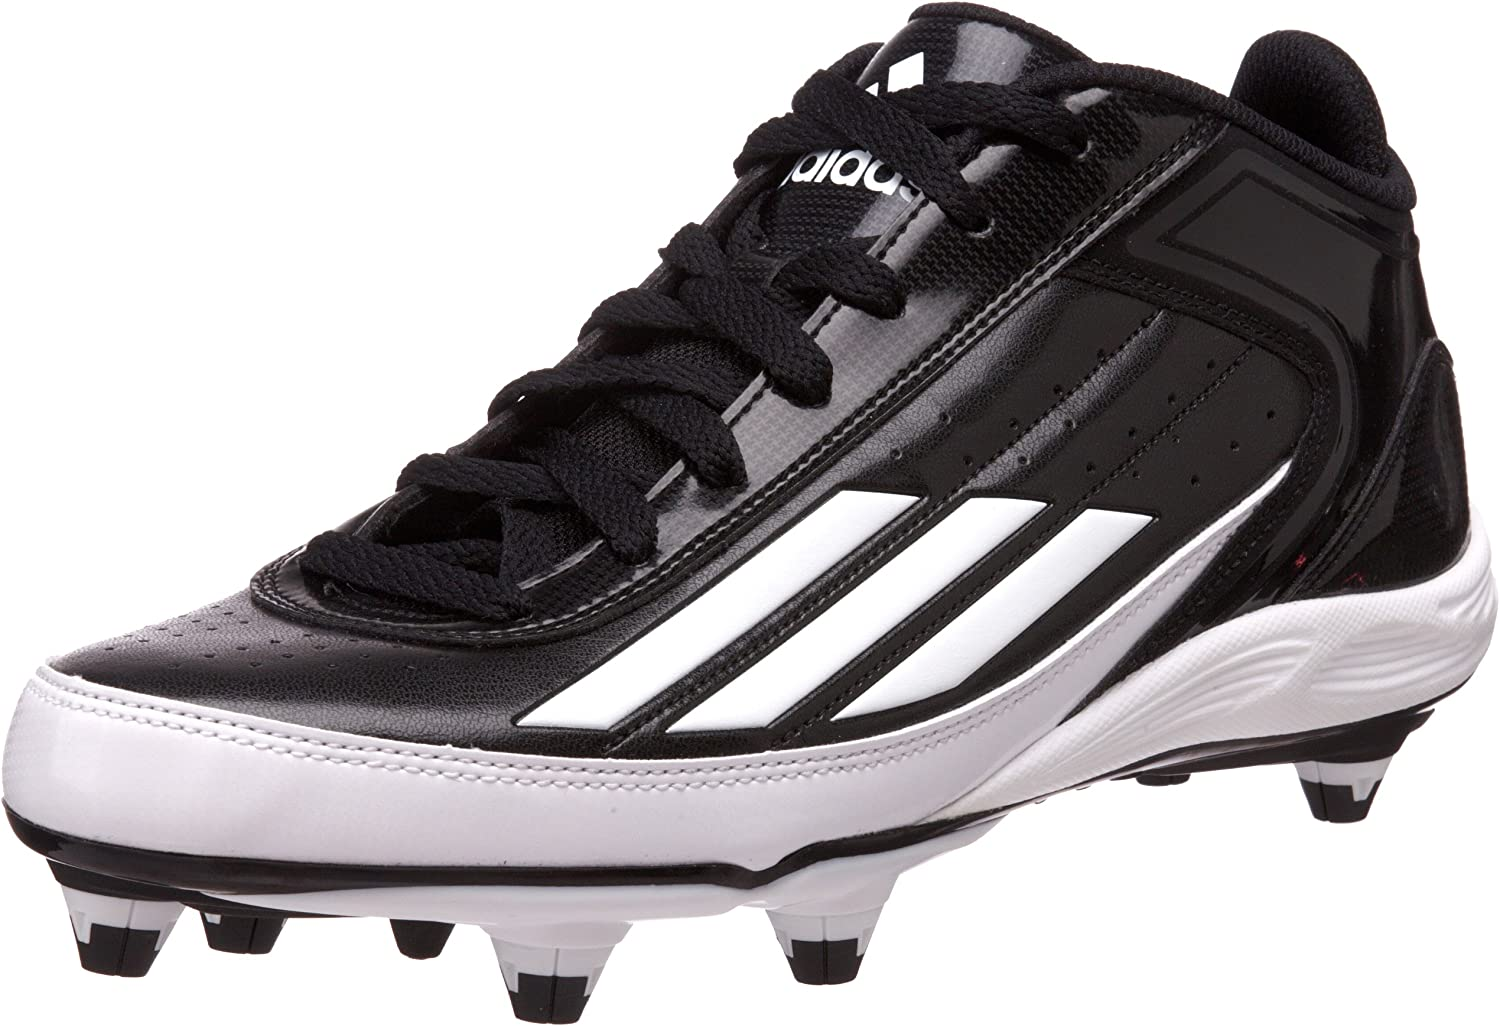 new style 35d14 cb2c3 Adidas Lightning Mid D D D Football Cleat,Black White ...